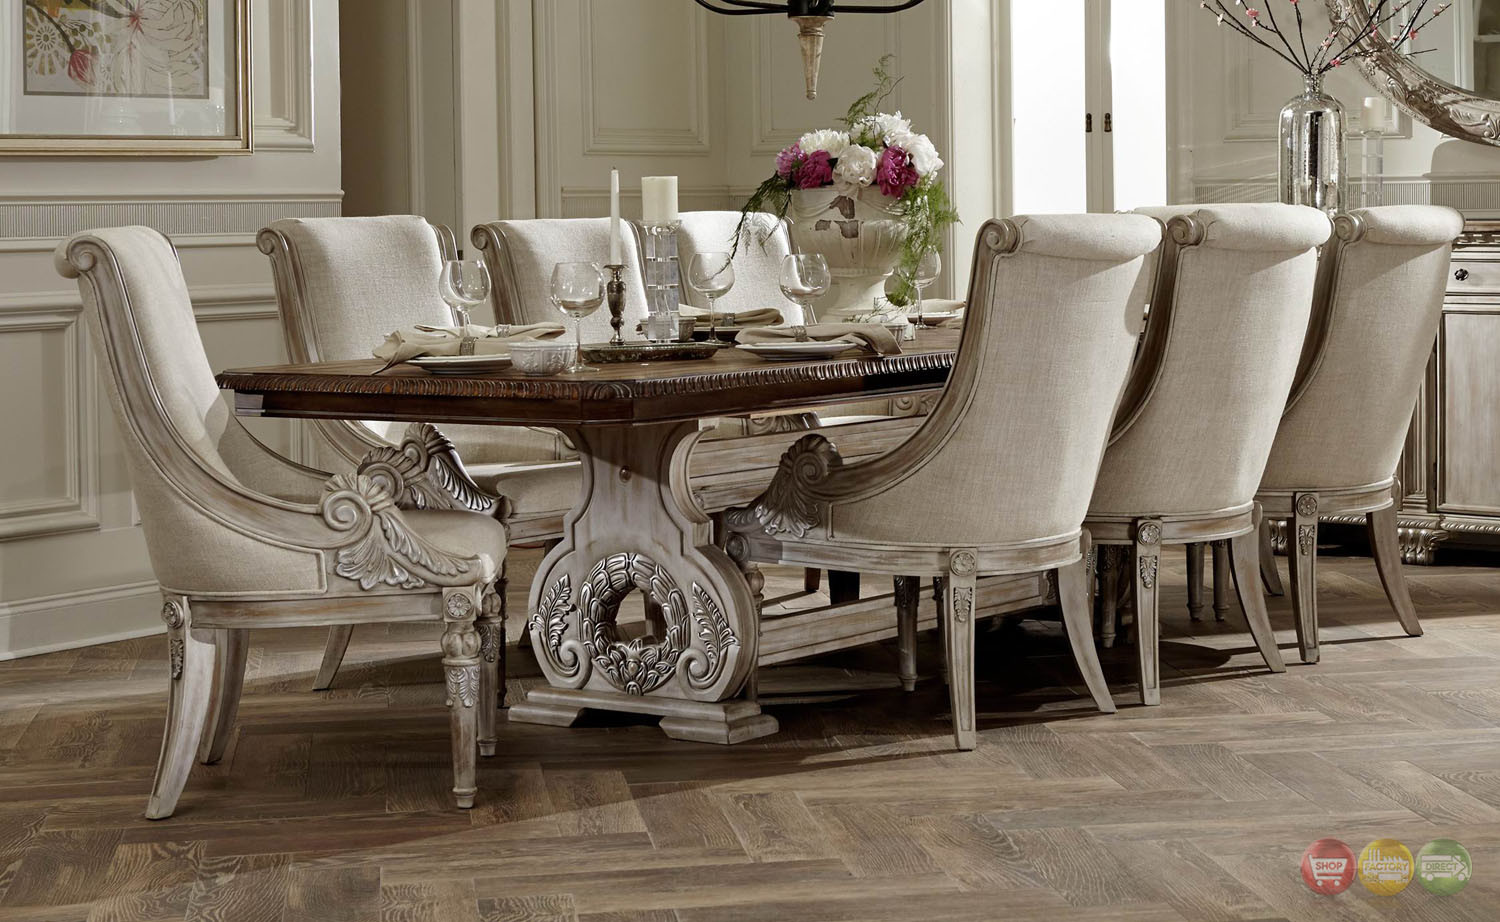 Best ideas about Dining Room Furniture . Save or Pin White Wash Wood Dining Table Now.